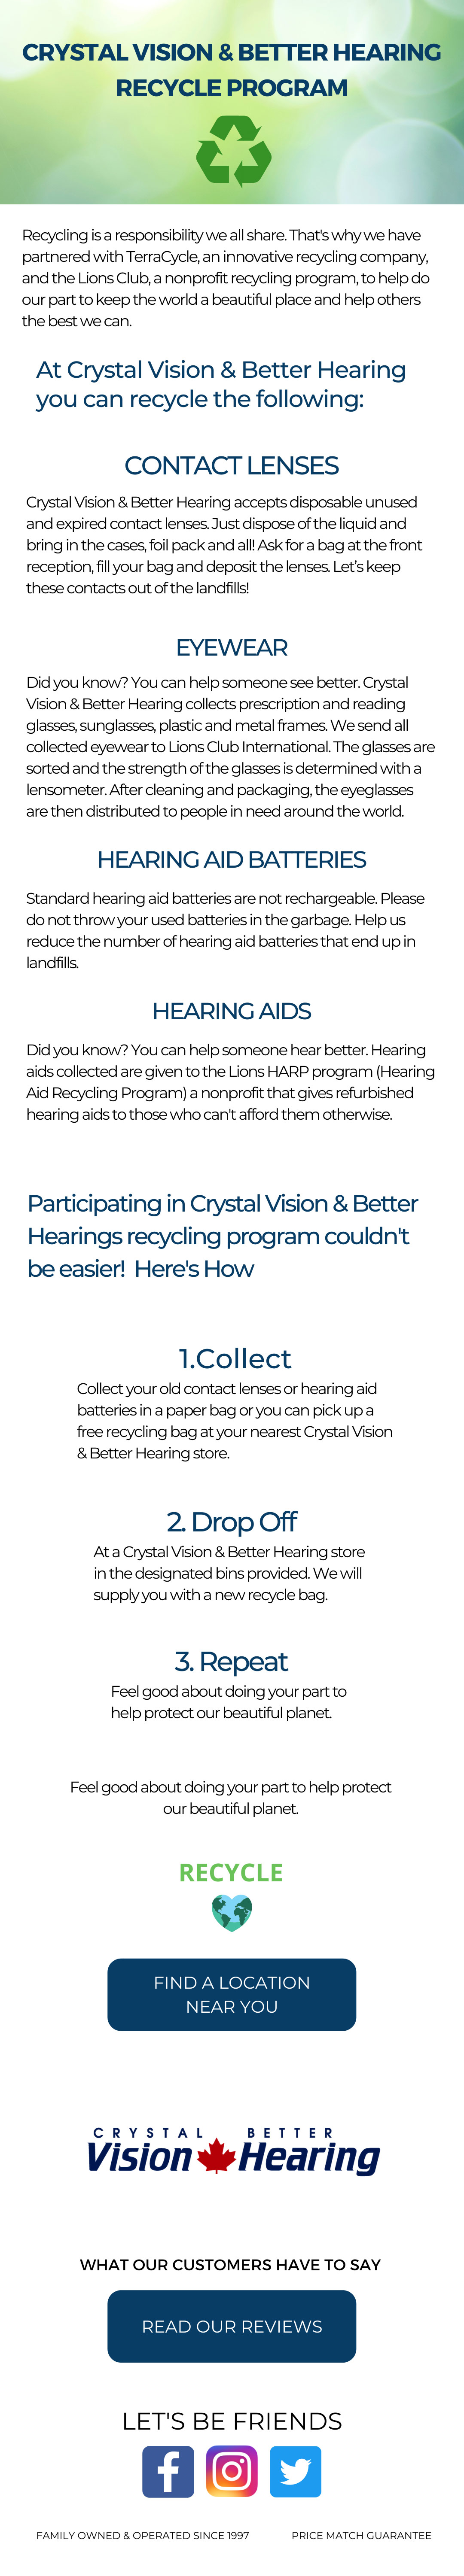 Crystal Vision & Better Hearing Recycle Program, Recycle Contact Lenses, Recycle Eyewear, Recycle Glasses, Recycle Hearing Aid Batteries, Recycle Hearing Aids